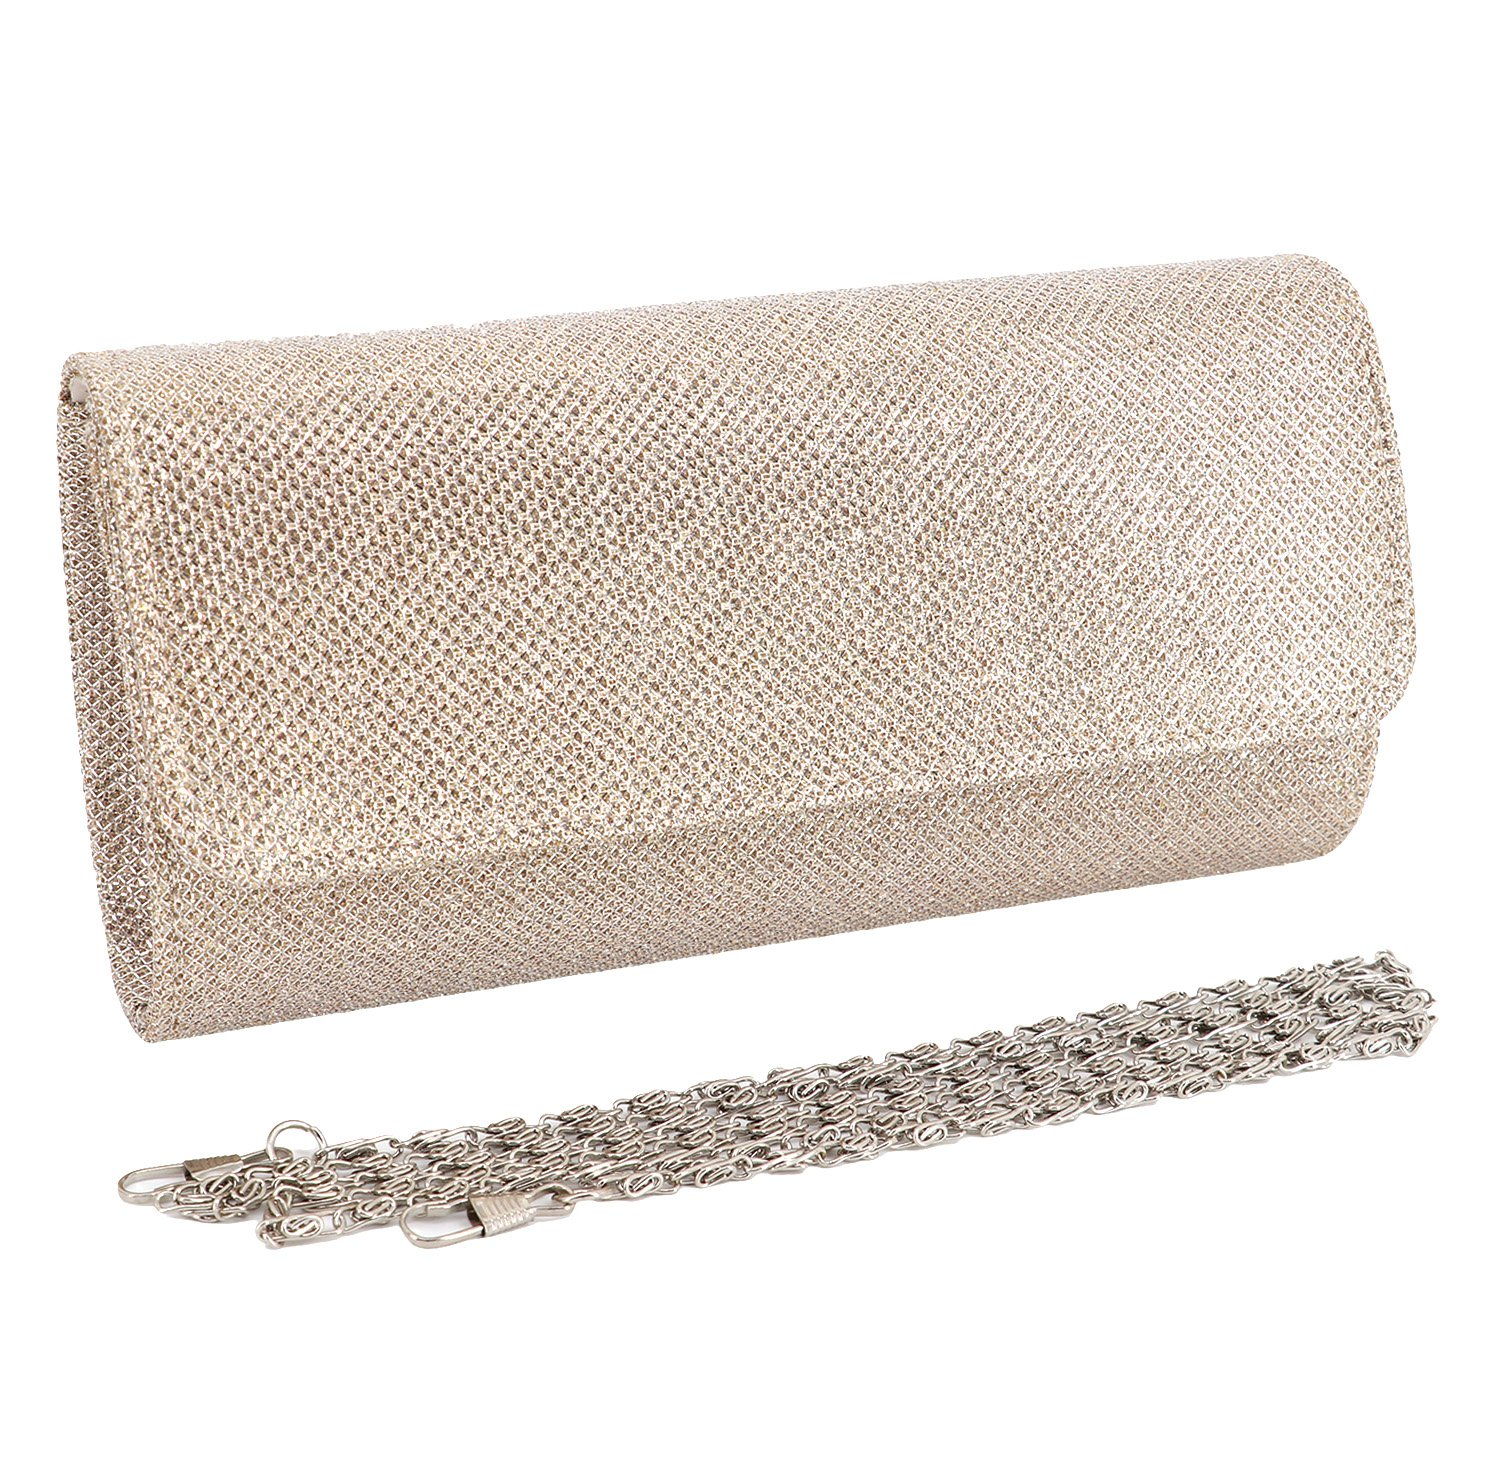 Naimo Flap Dazzling Clutch Bag Evening Bag Detachable Chain (Champagne)